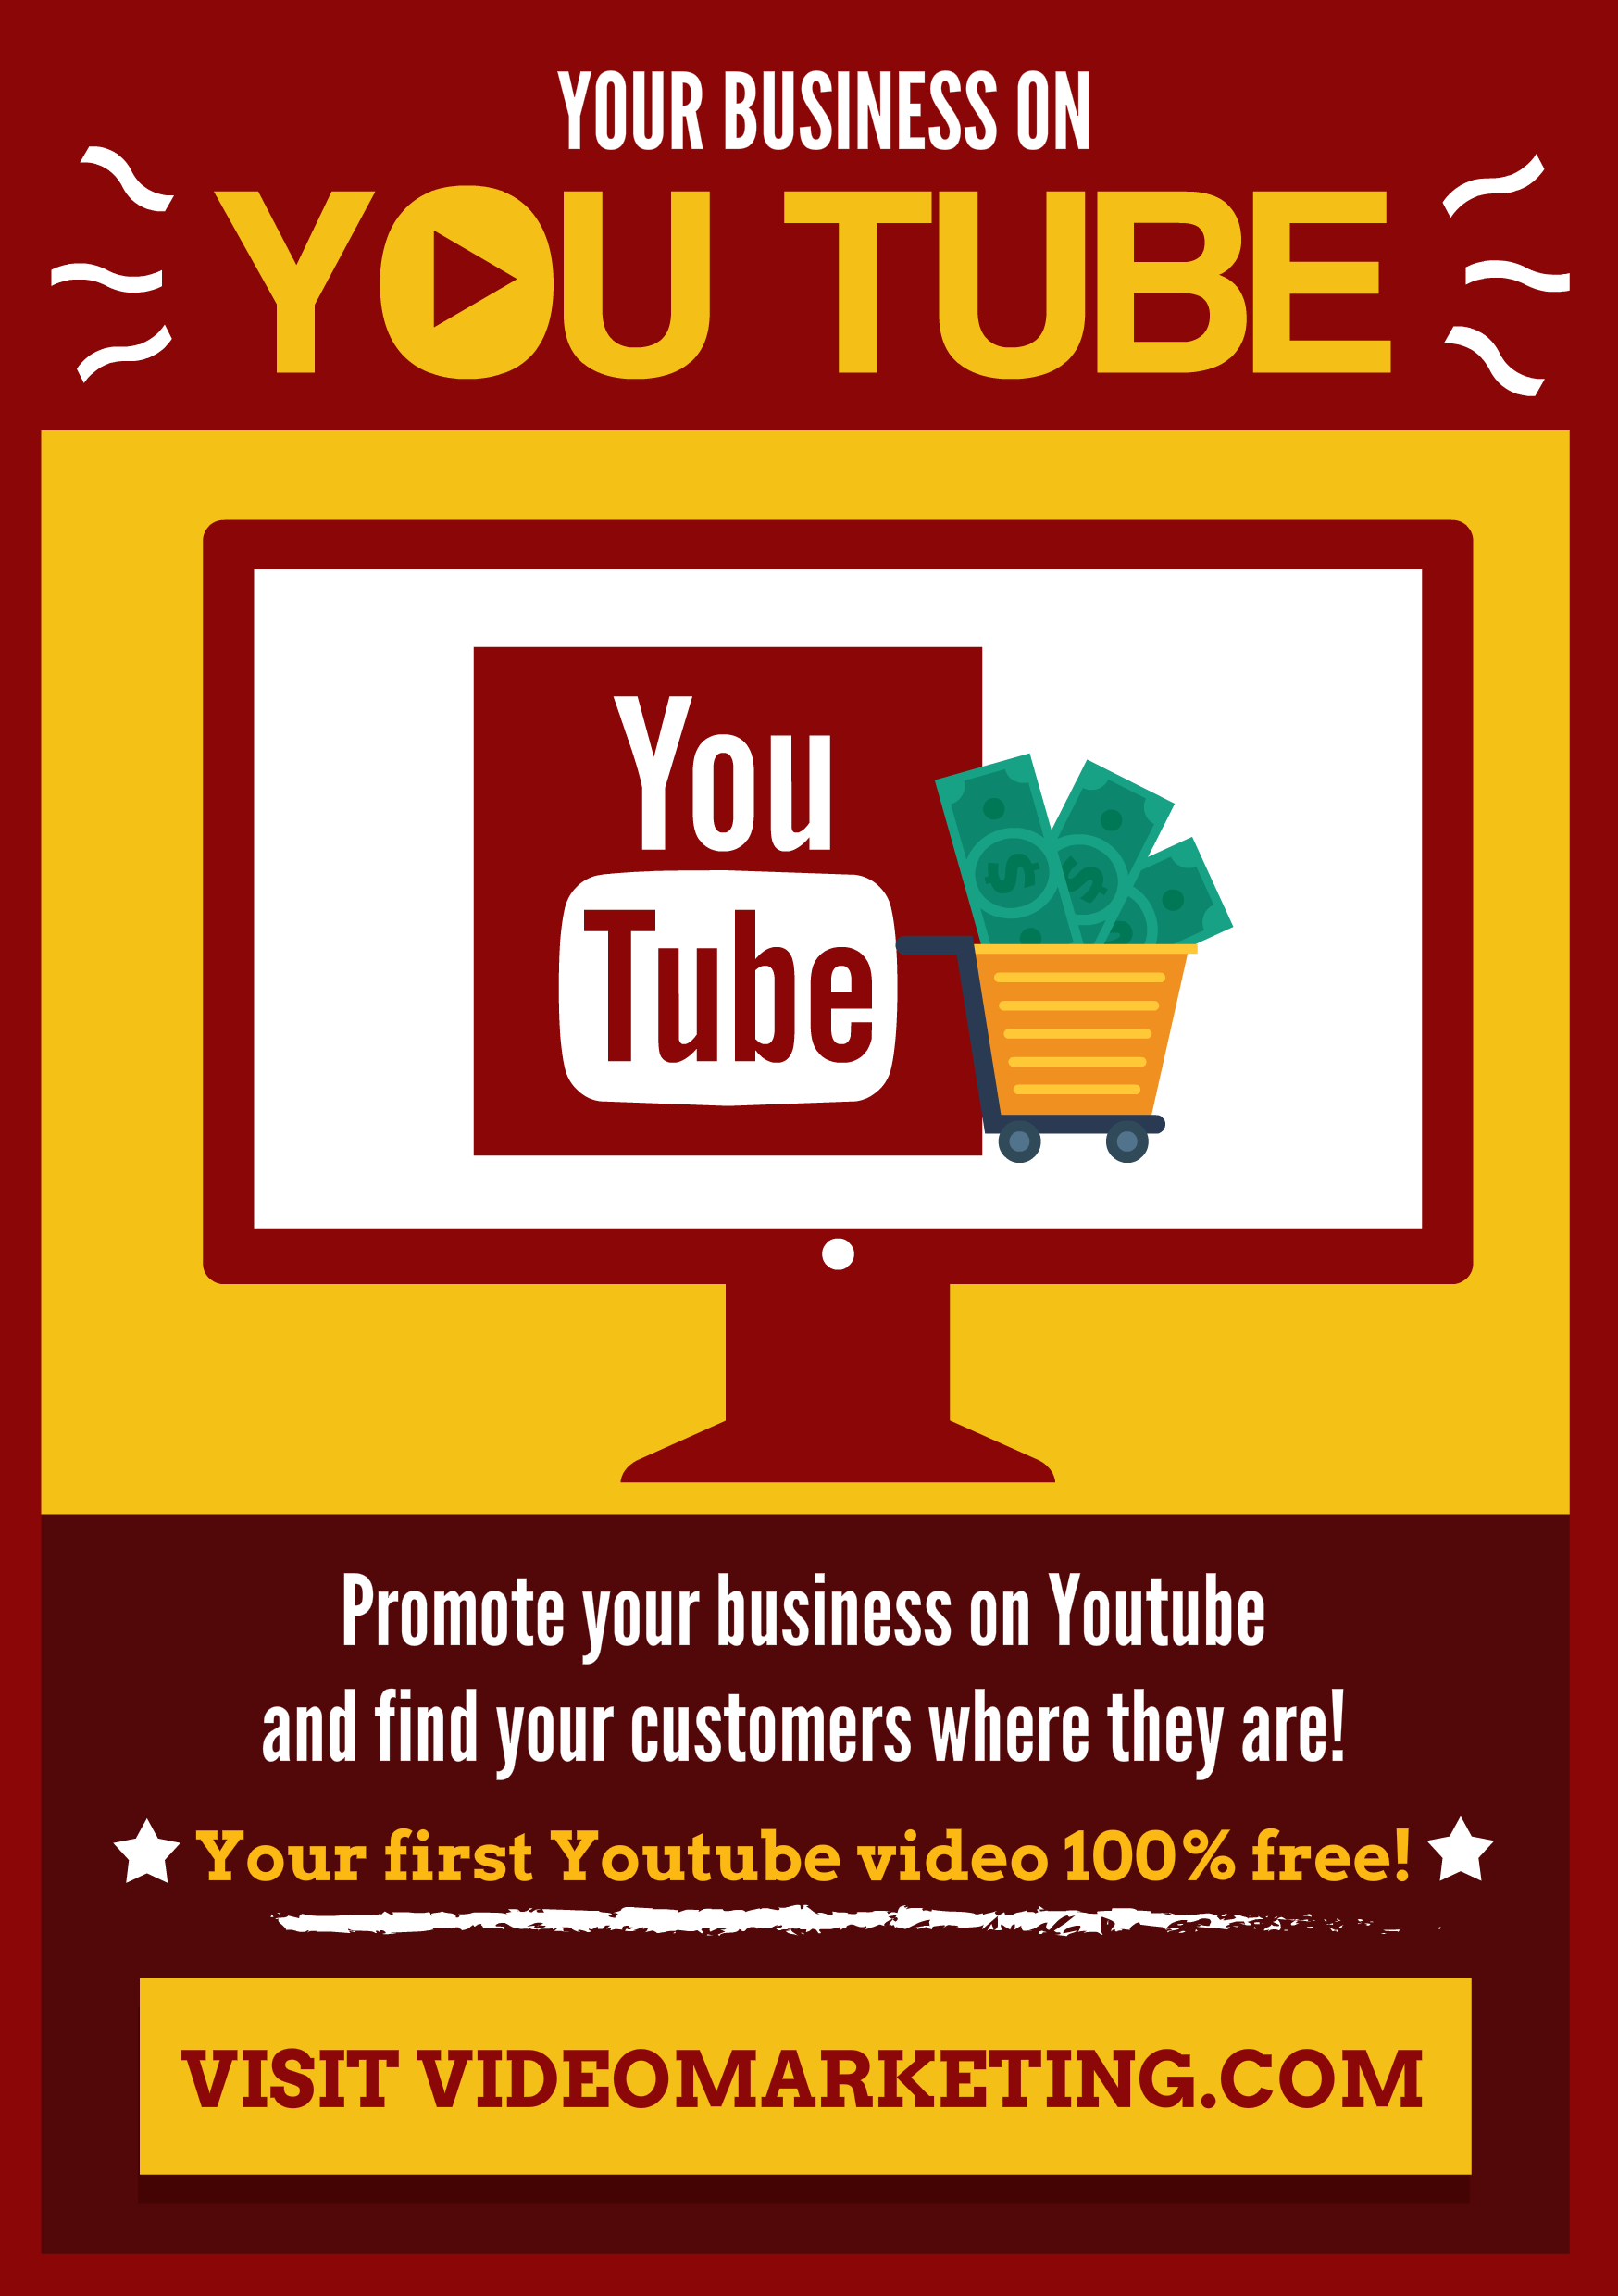 Youtube Marketing A Promotional Flyer HttpPremadevideosCom